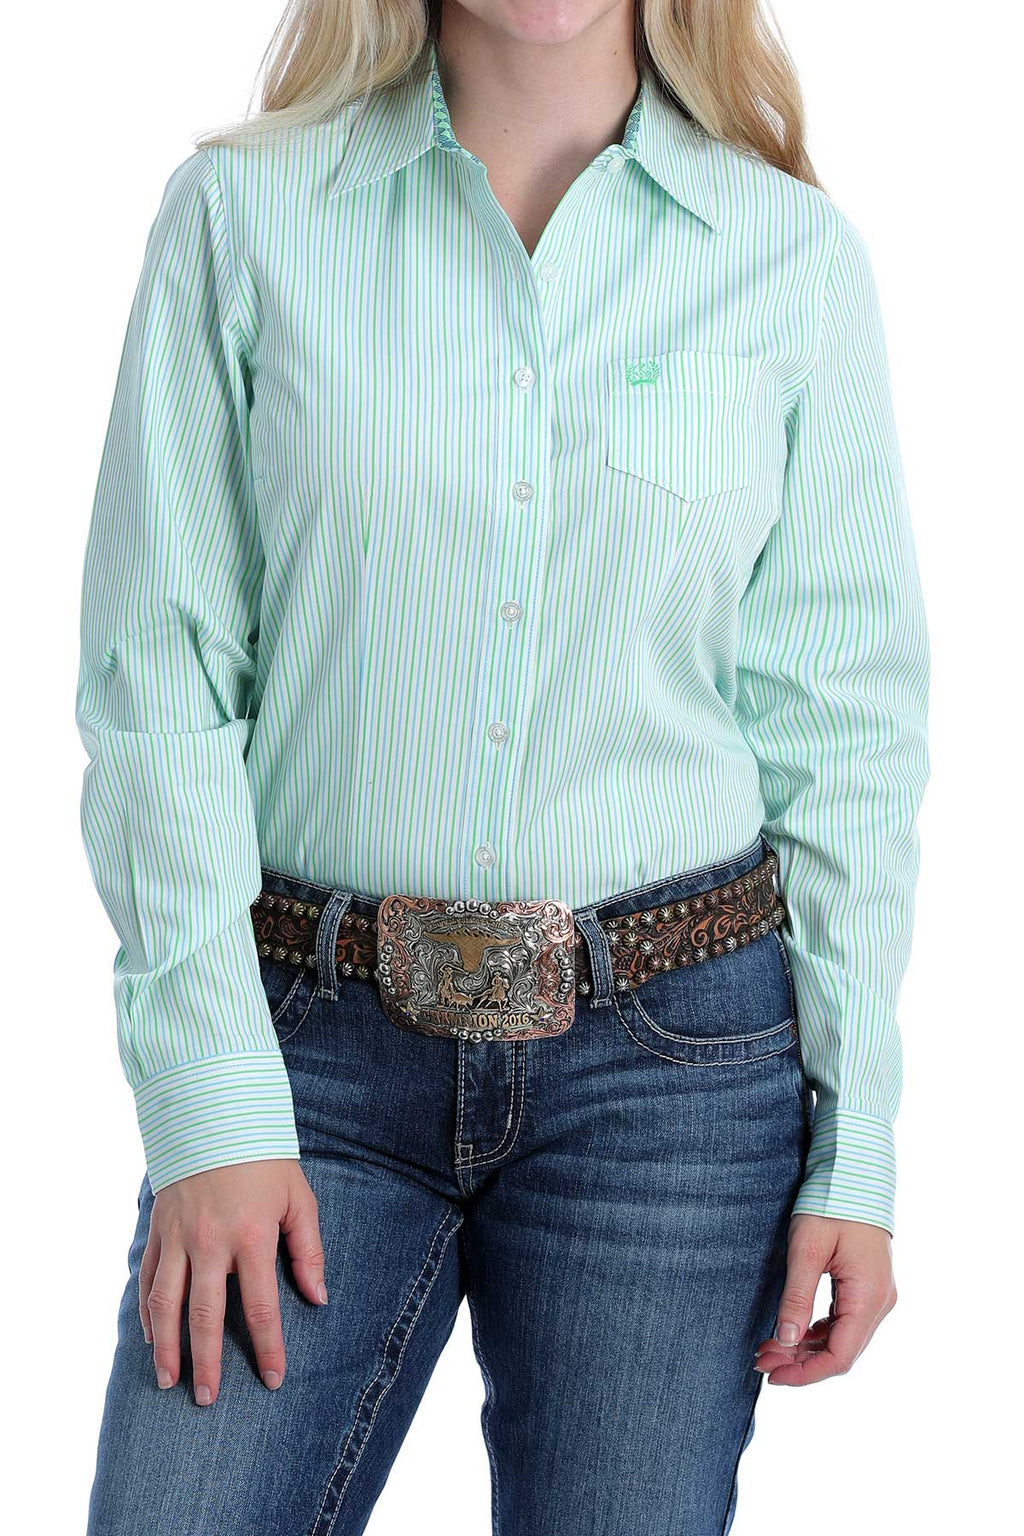 Women's Cinch MSW9164165 Green, Blue, and White Stripe Print Button-Down Western Shirt